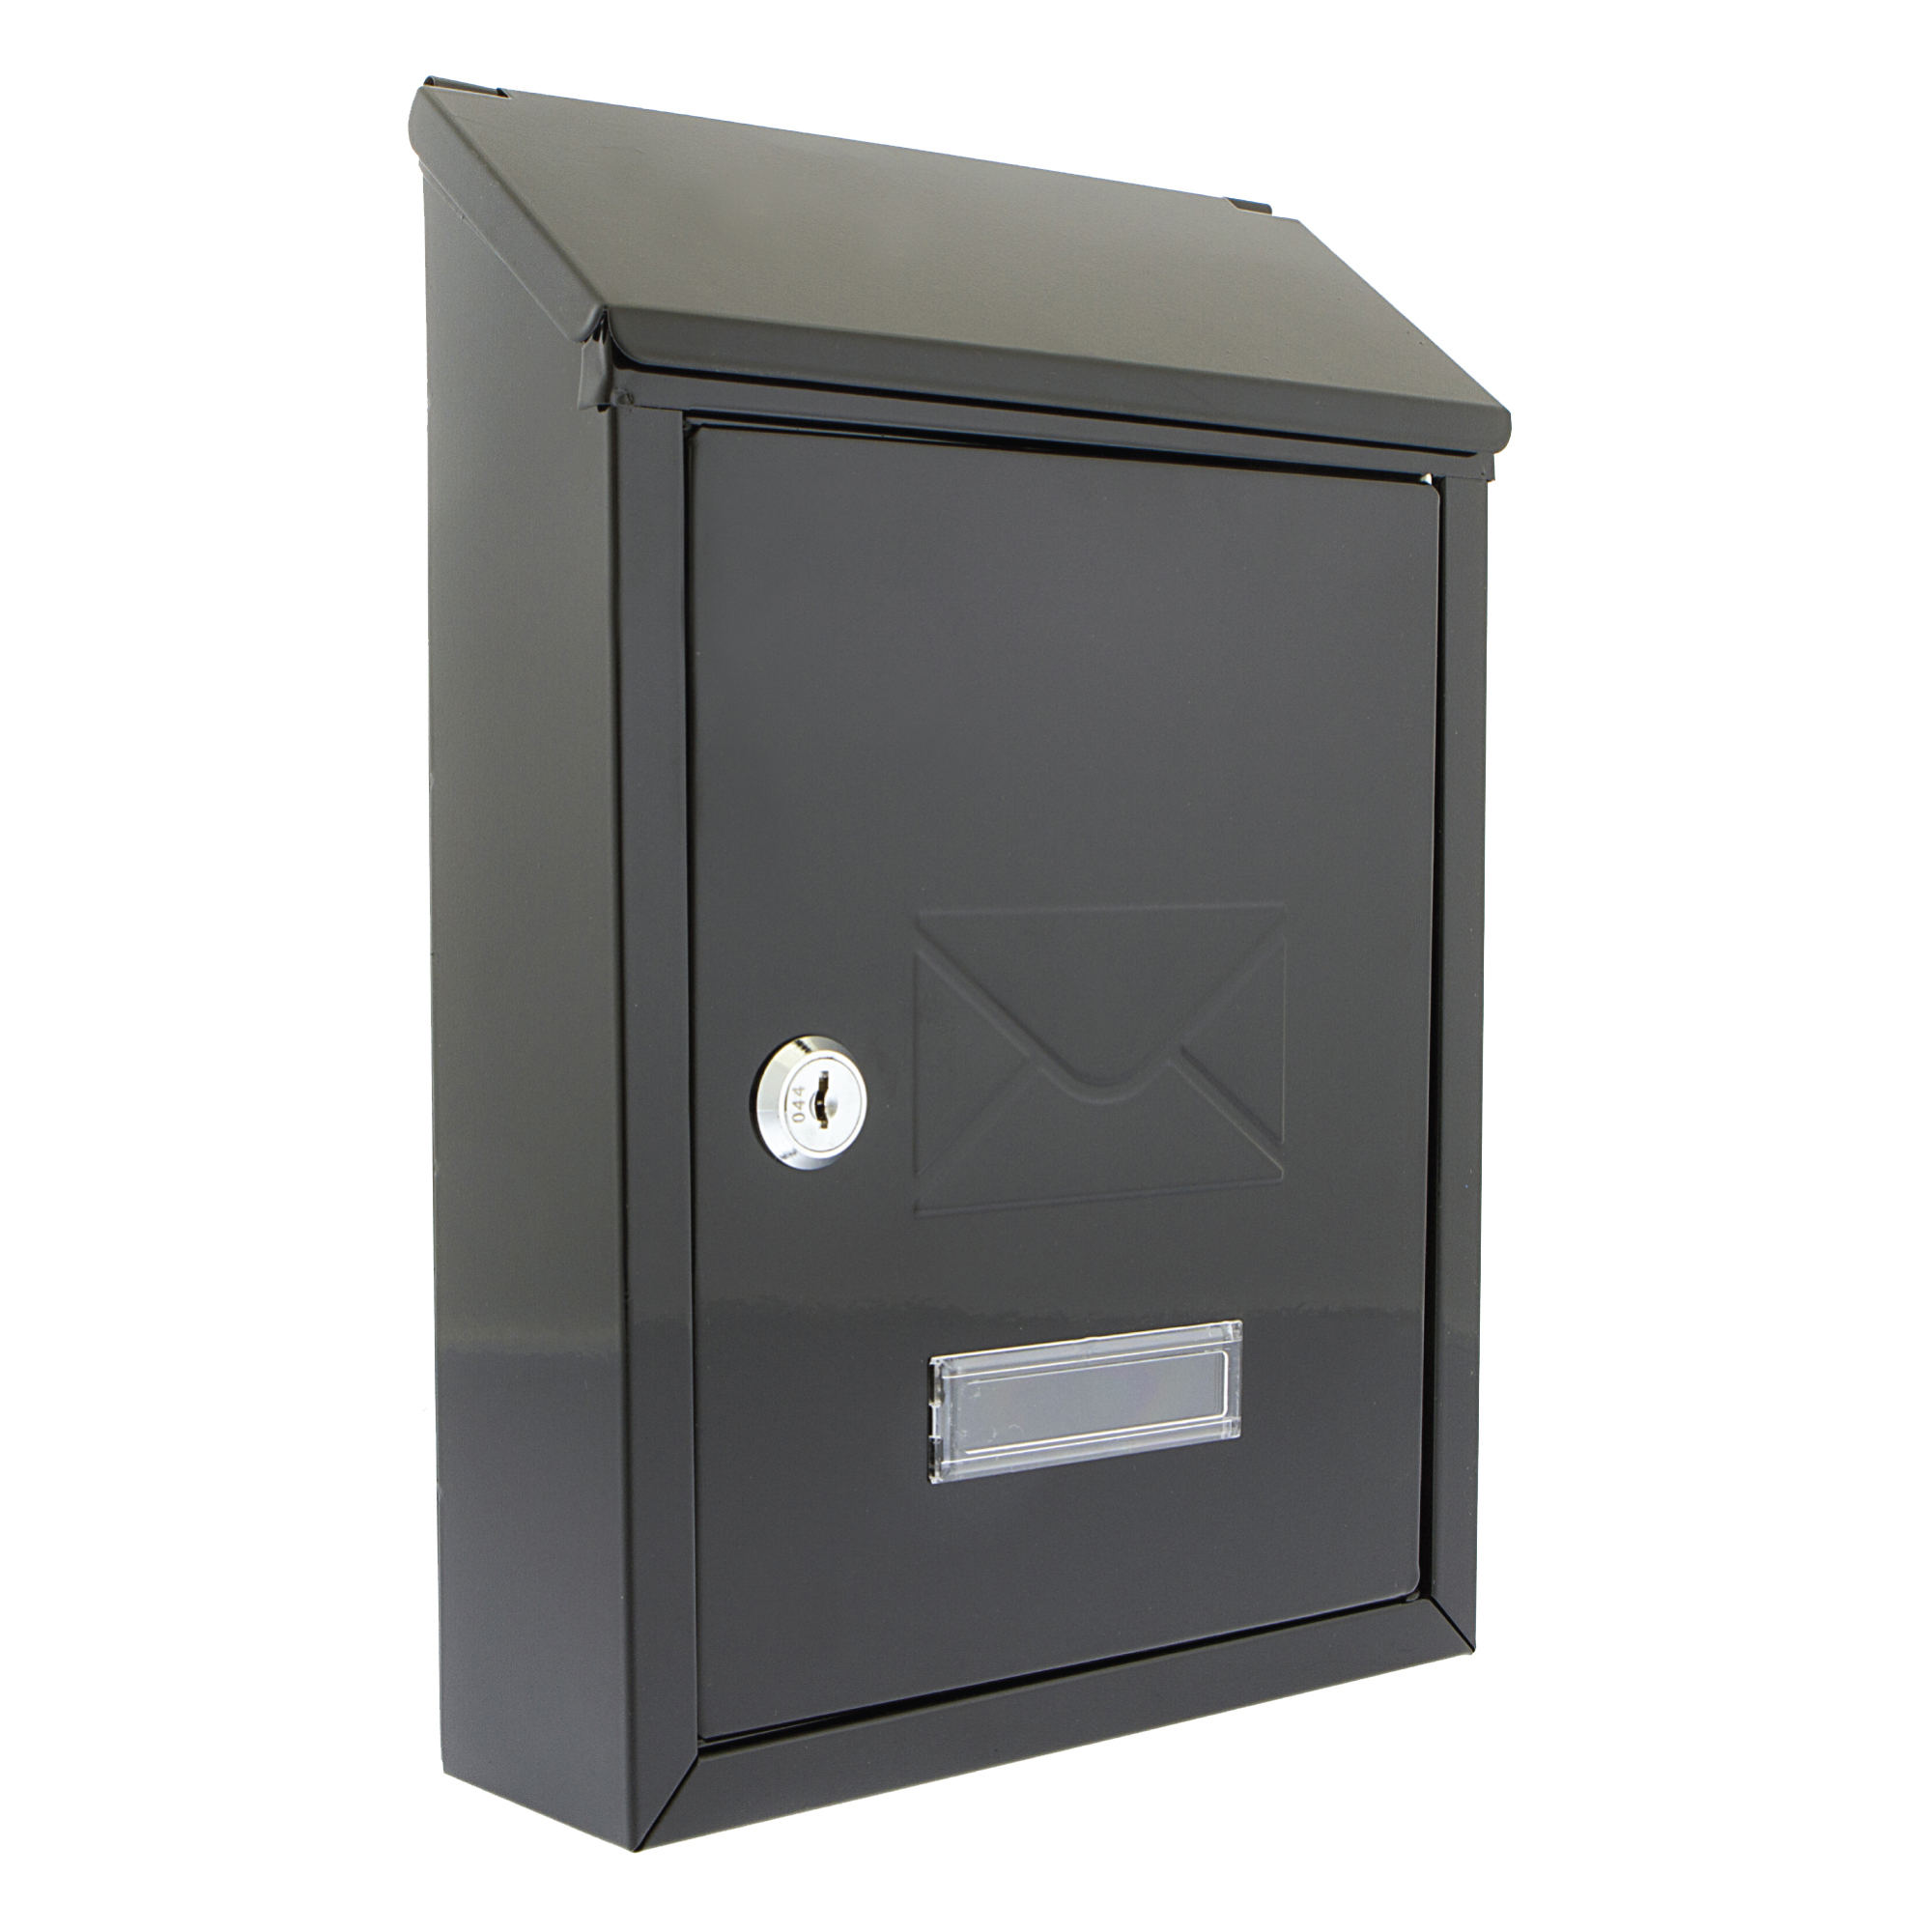 Document Post or Suggestion Box Wall Mountable with Fixings 223x86x320mm Black